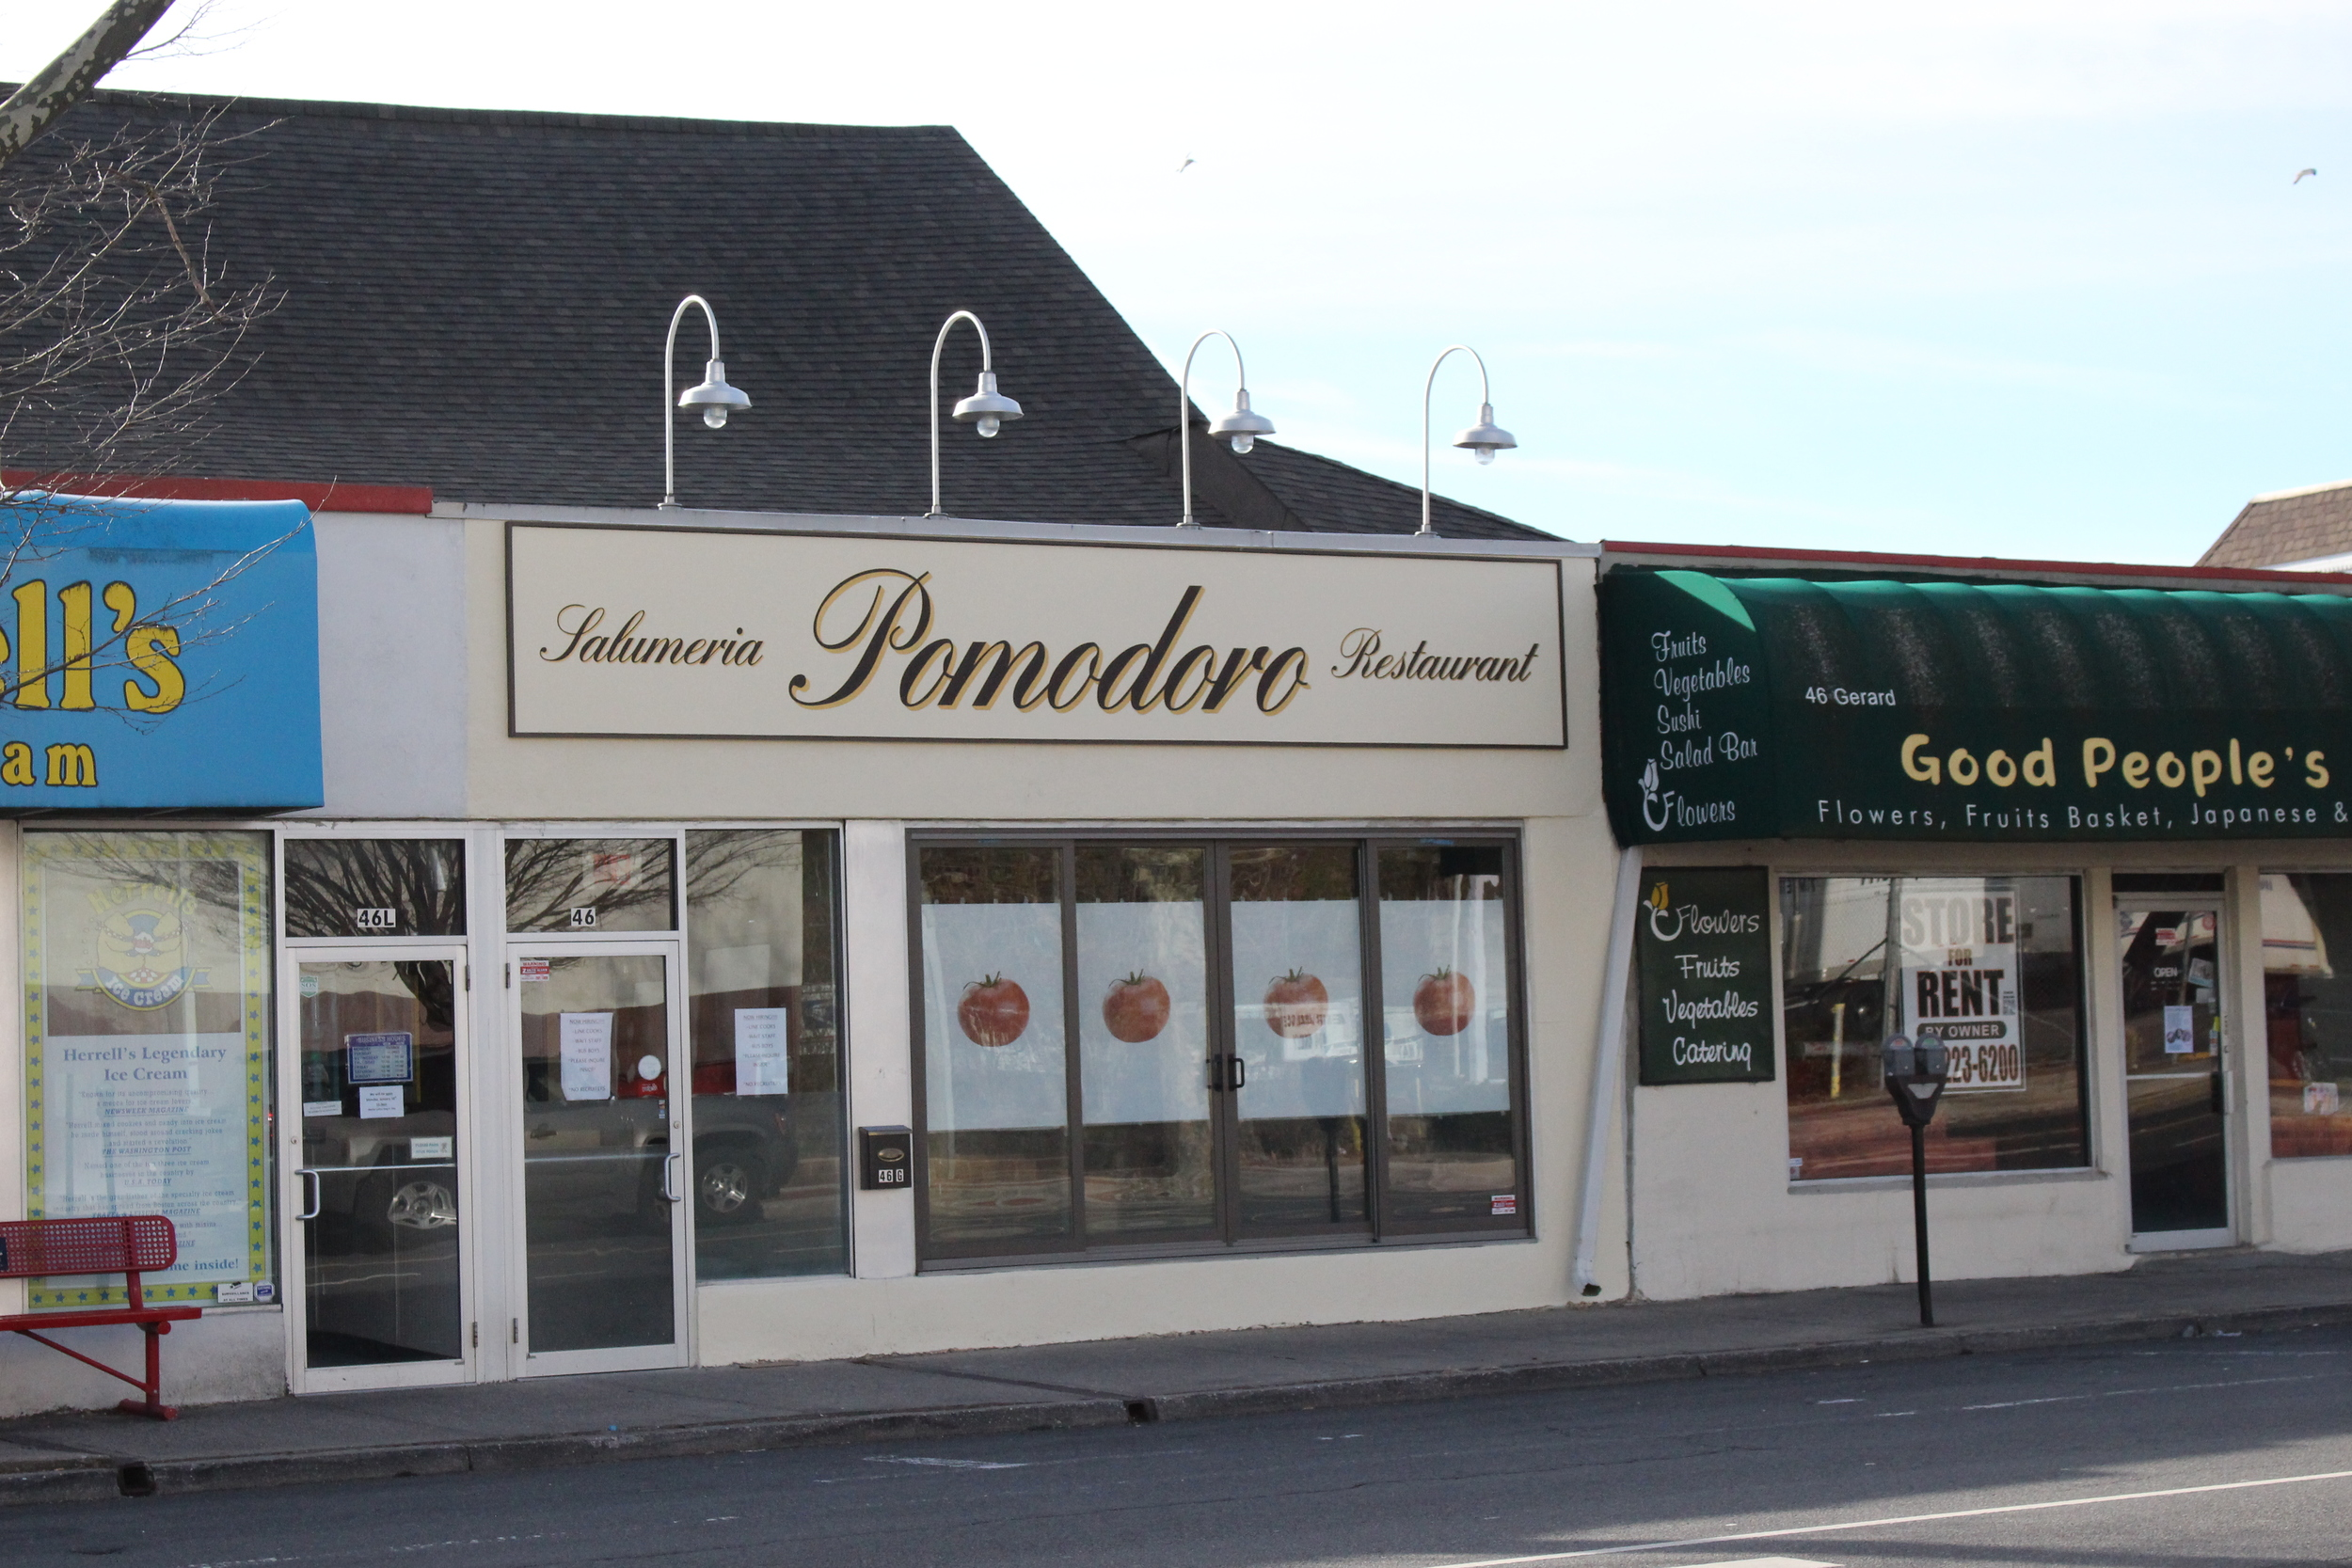 Salumeria Pomodoro, an updated version of Pomodoro, will be returning its Tuscan and Roman style Italian cuisine to Huntington Village. The Machado family hopes to open the new location late in February or early in March.